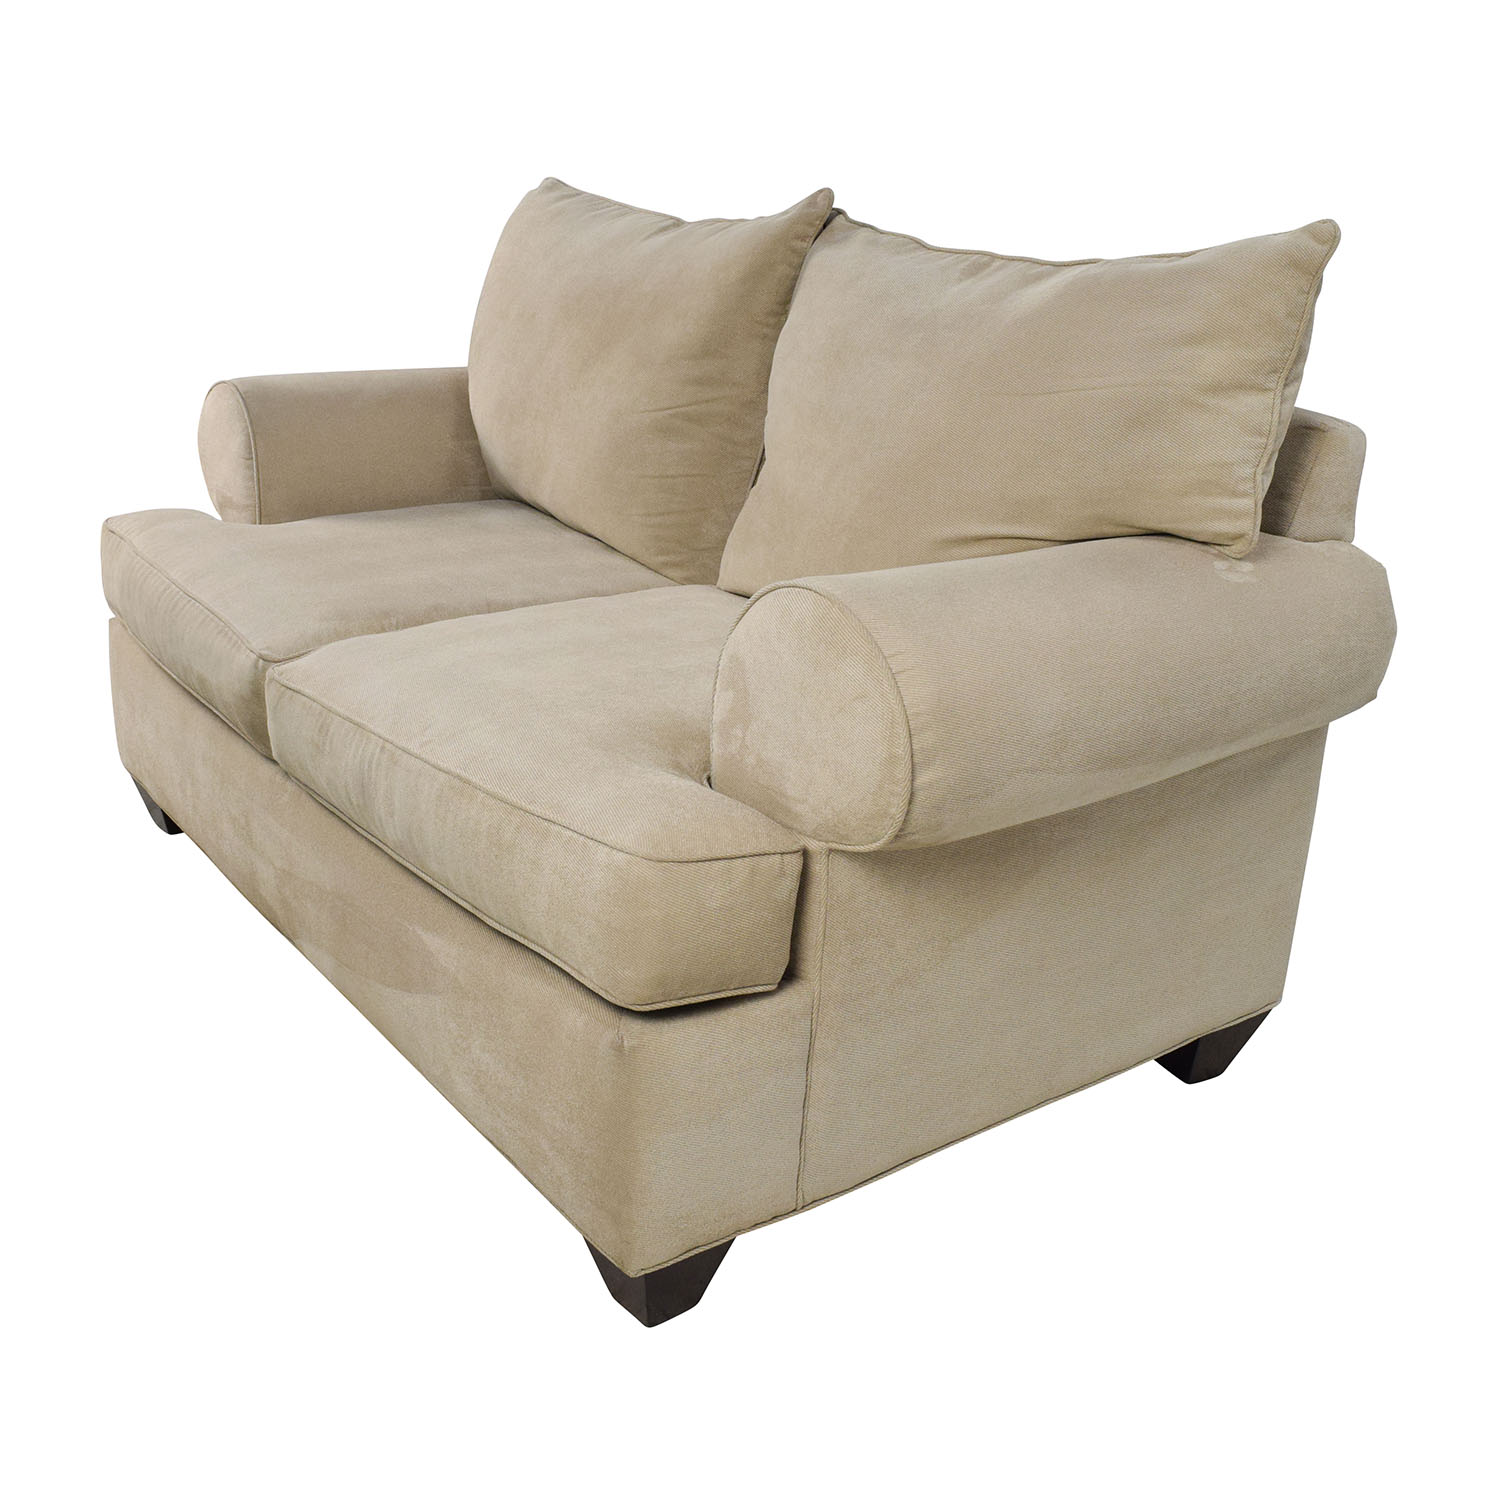 Beige microfiber sofa the features of a microfiber for Microfiber sectional sofa